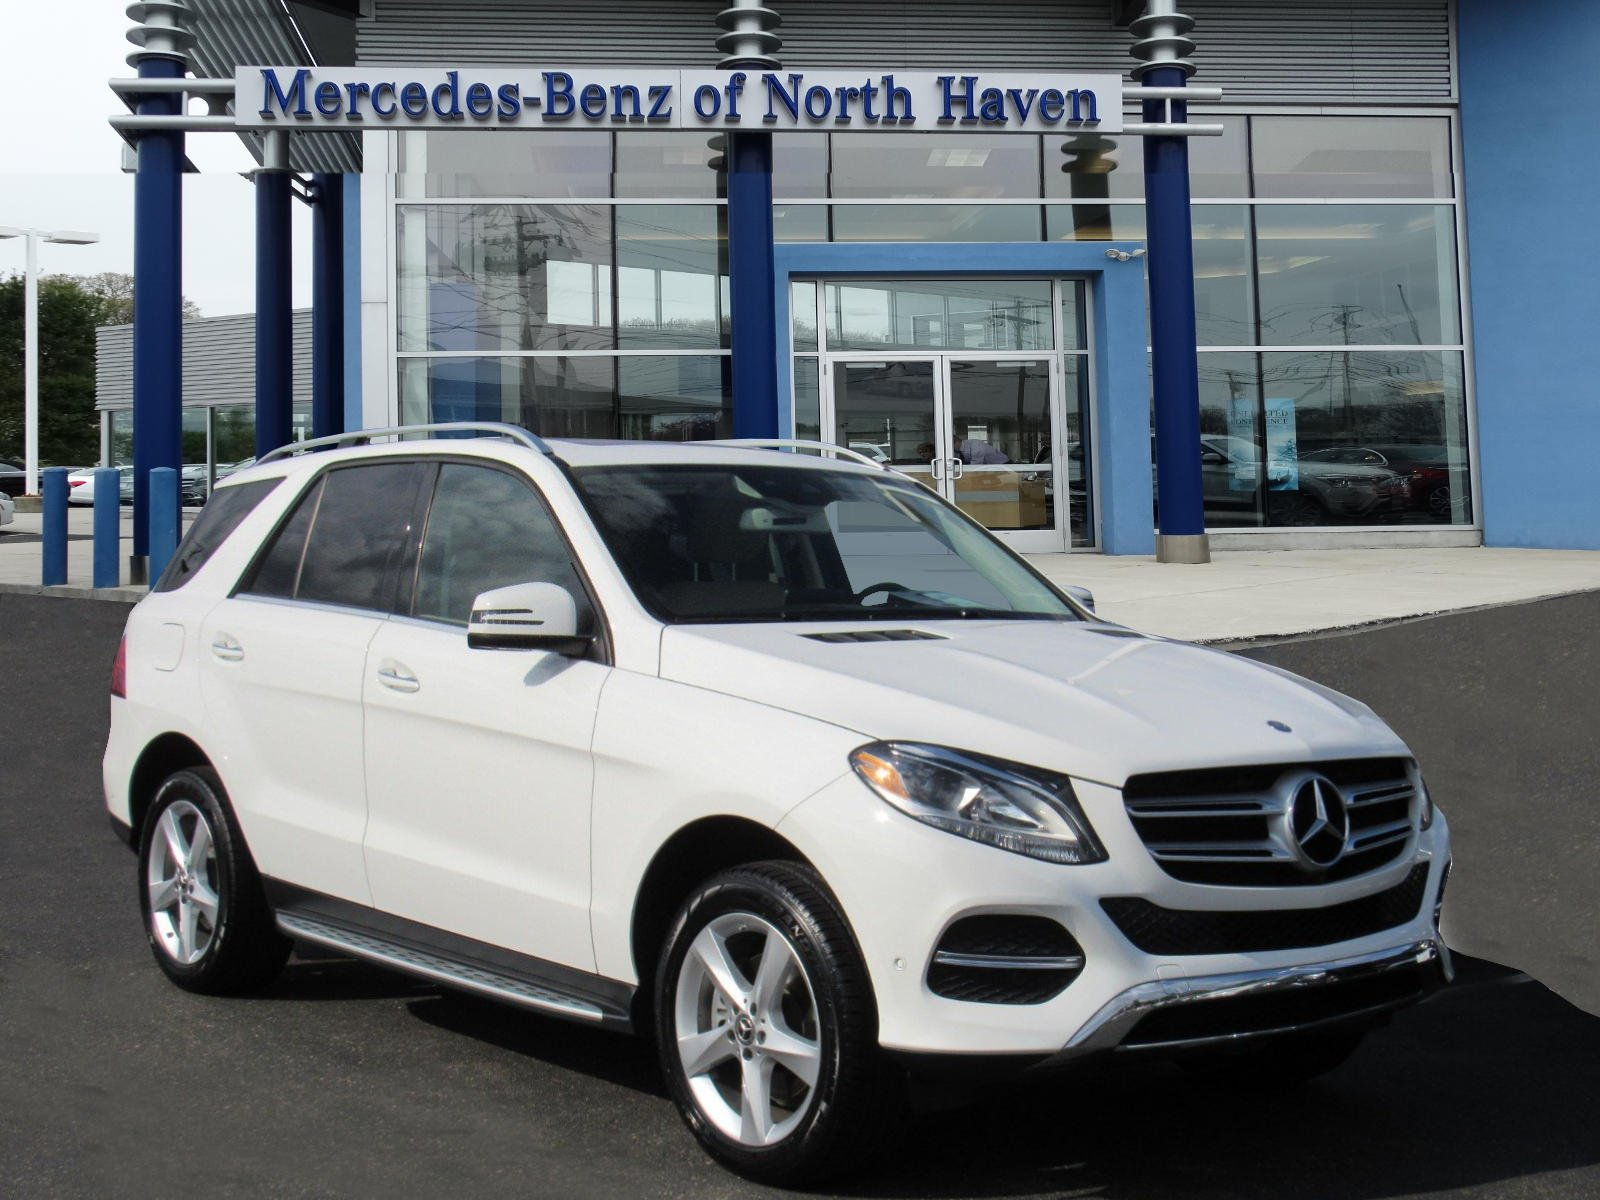 Certified Pre Owned 2017 Mercedes Benz GLE GLE 350 SUV in North